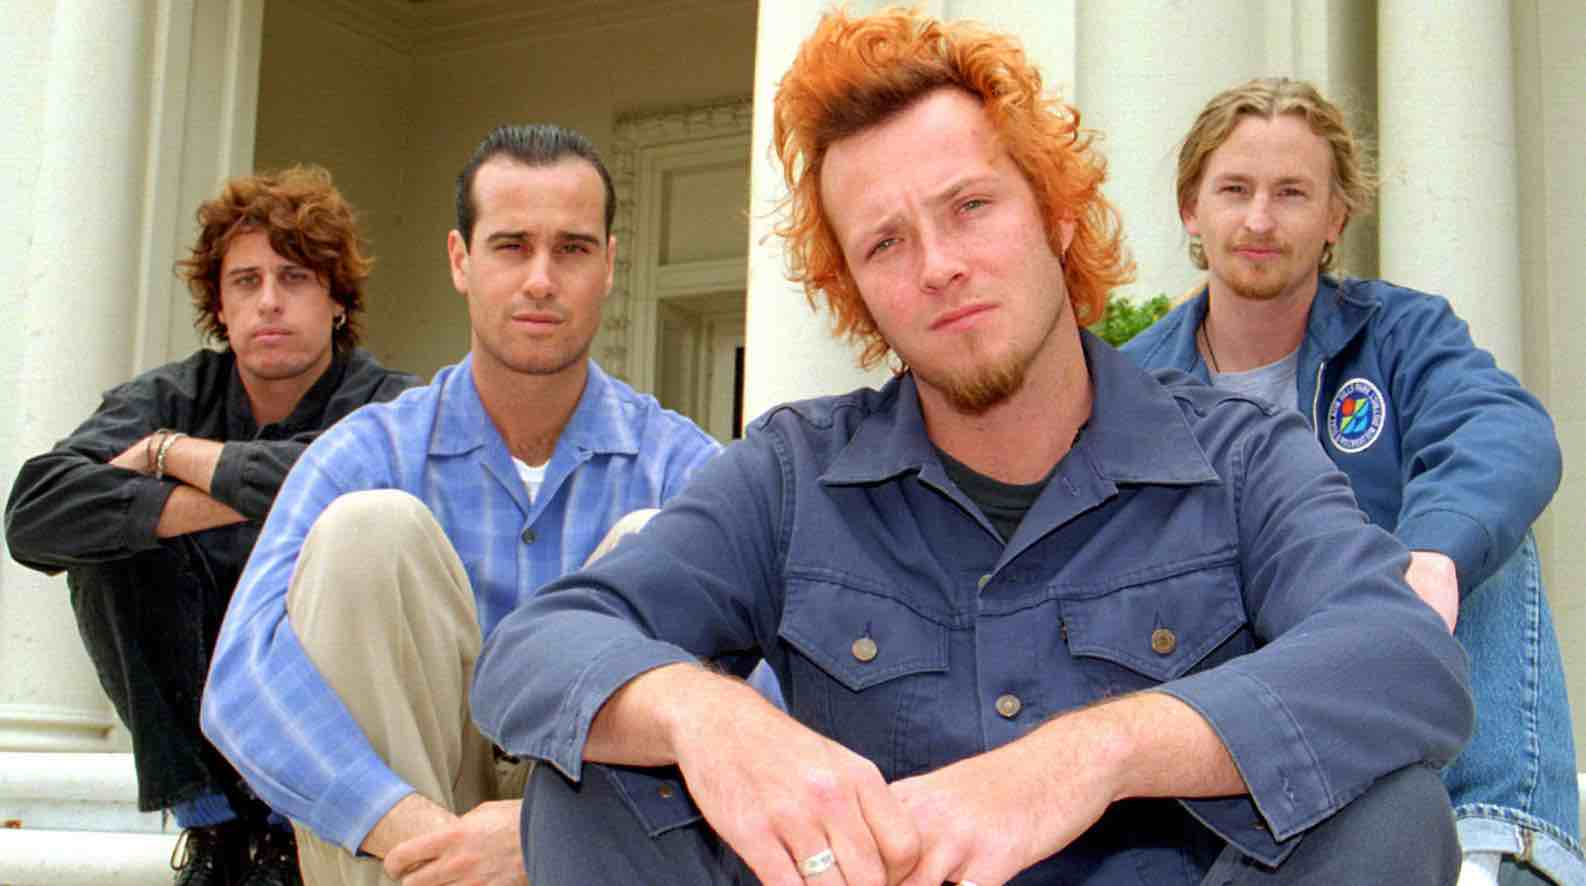 HD Quality Wallpaper   Collection: Music, 1586x886 Stone Temple Pilots